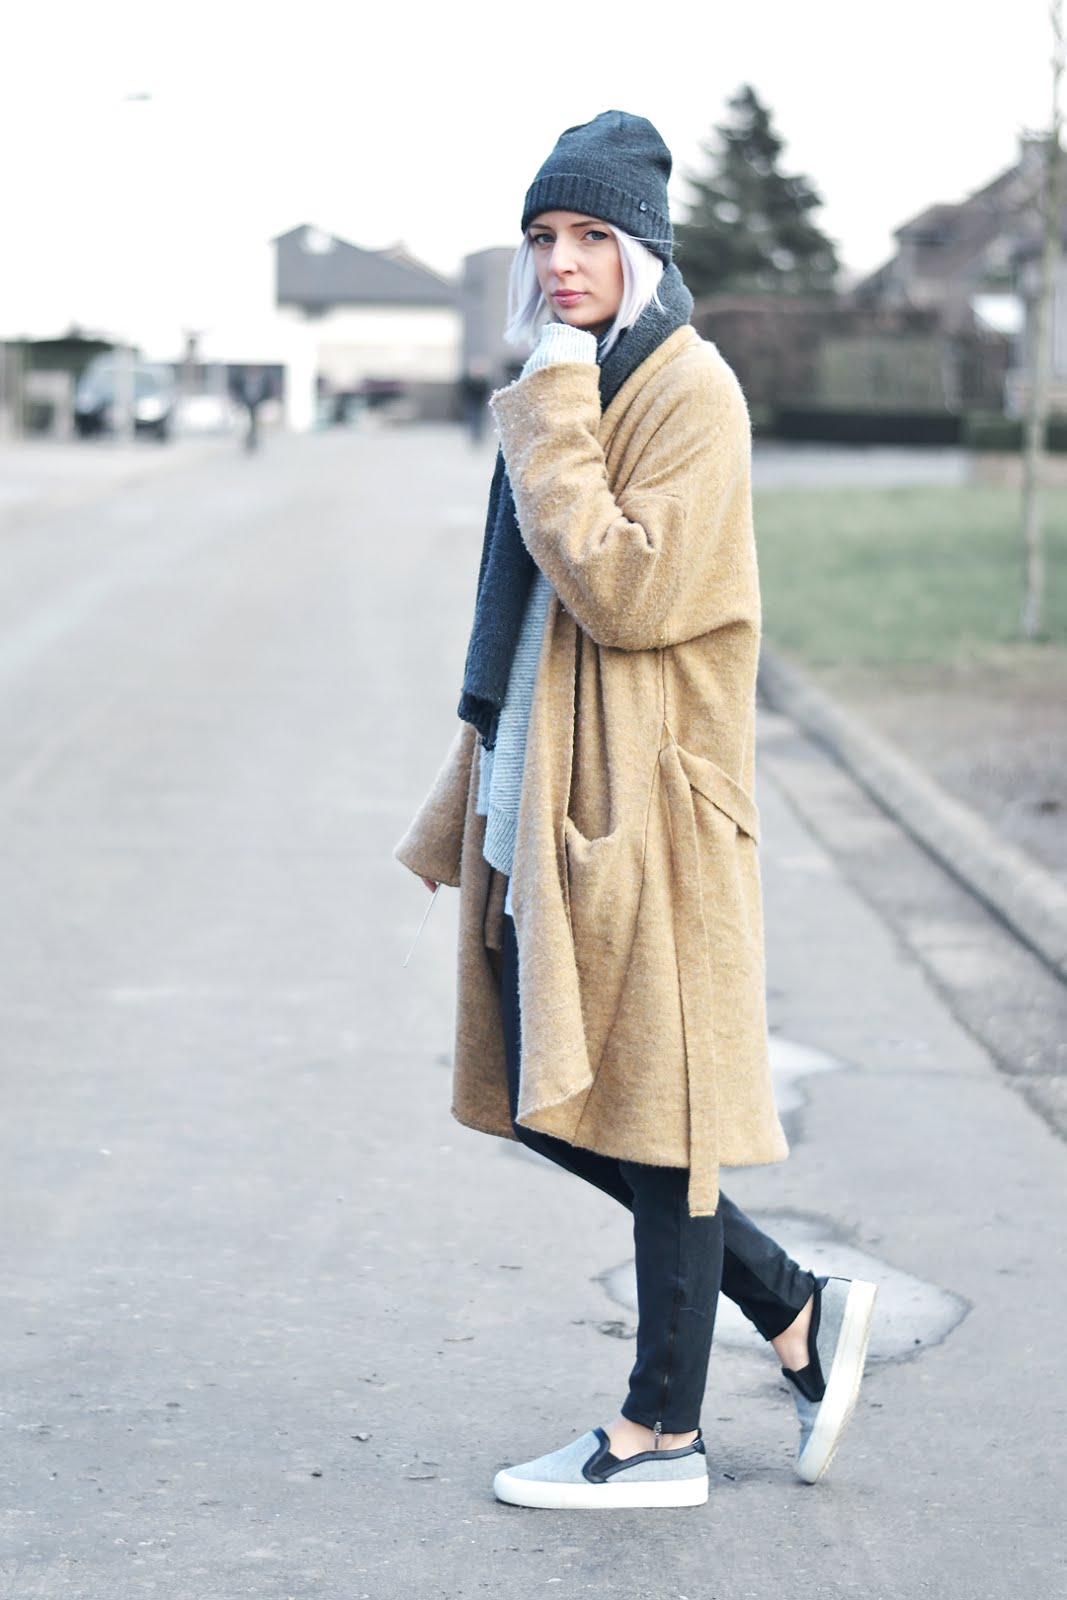 Cheap monday hat, scarf, zara asymmetric jumper, camel coat, mango, wool, knitwear, winter, trends, inspiration, street style, belgian fashion blogger, belgische mode blogger, zara slip on, grey, celine